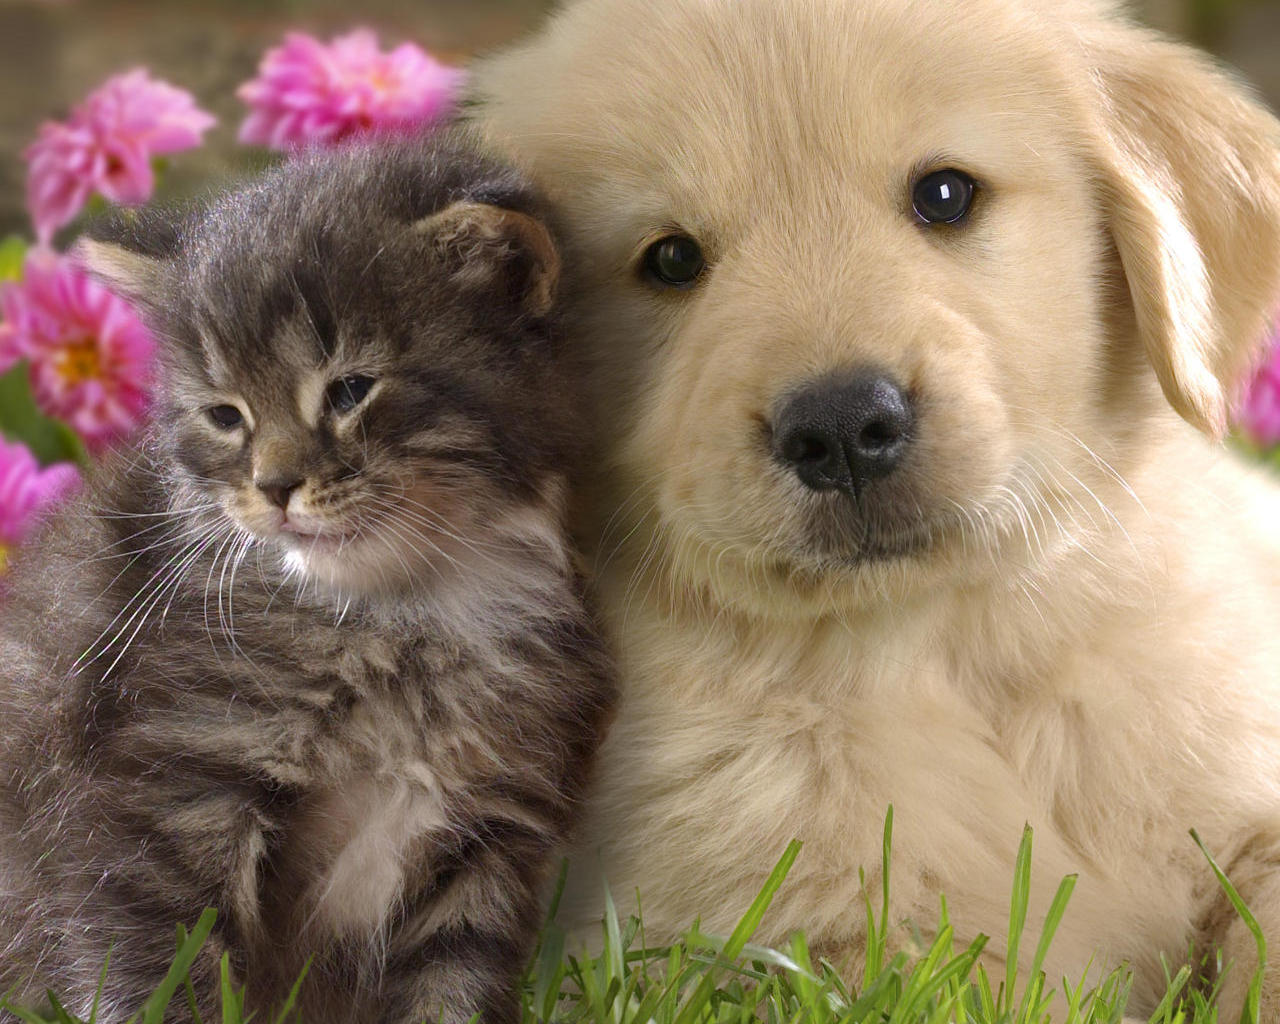 Cute Puppies And Kittens Wallpapers 1280x1024